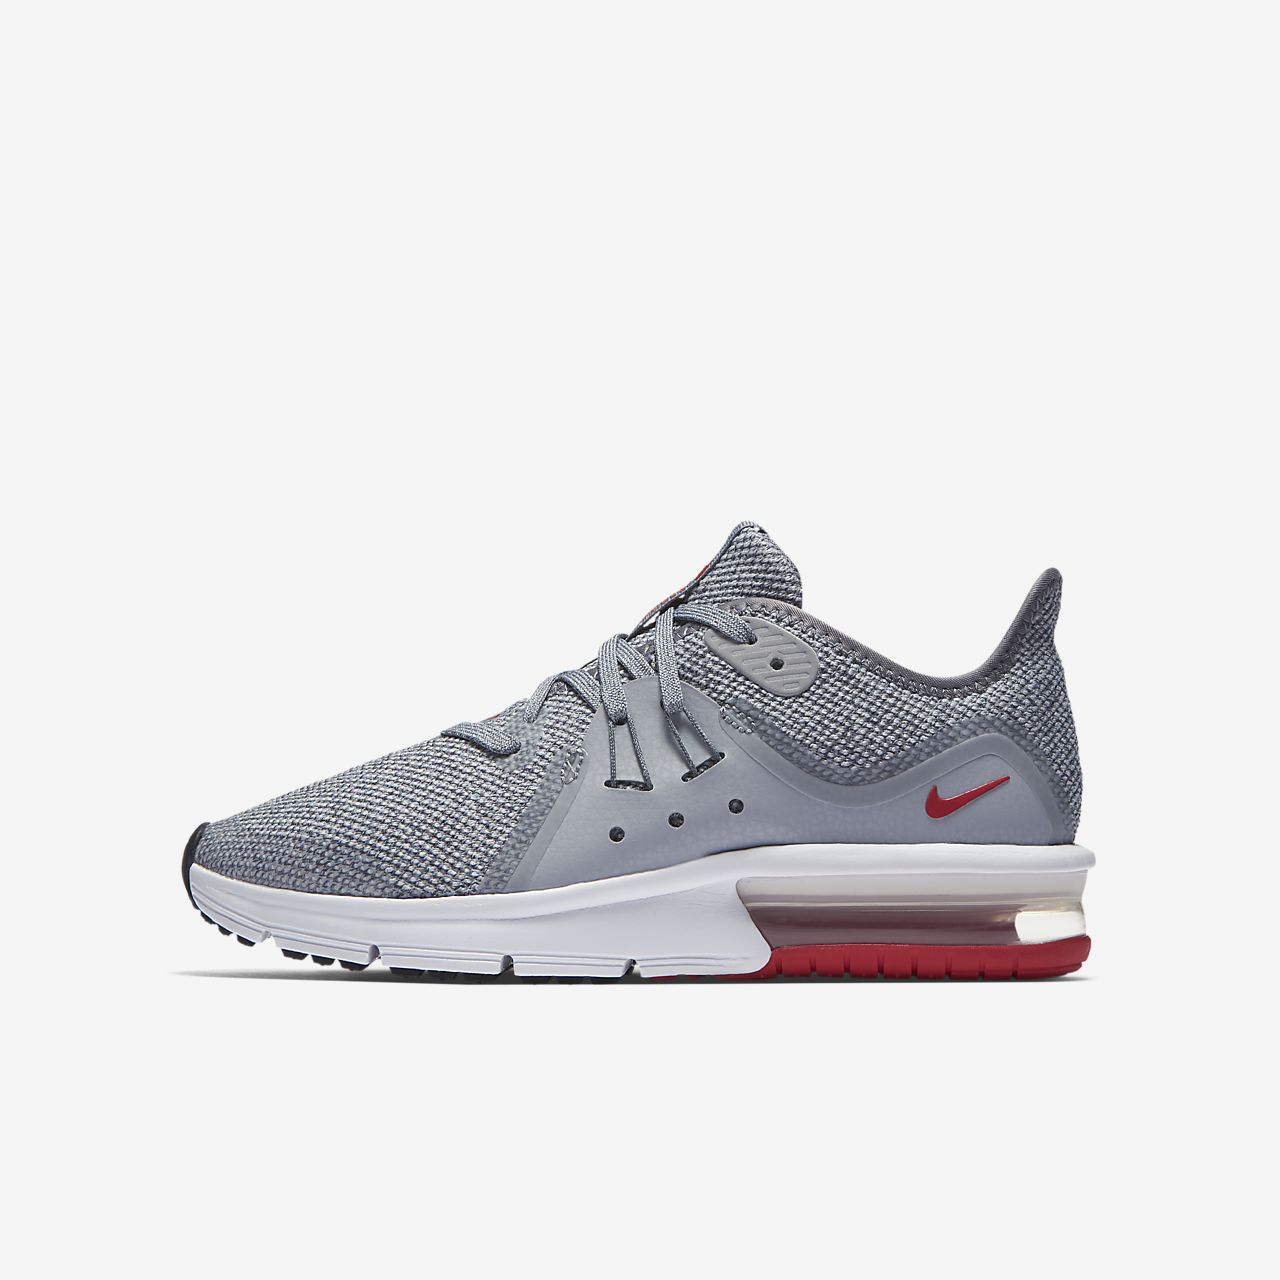 Nike Air Max Sequent 3 Review